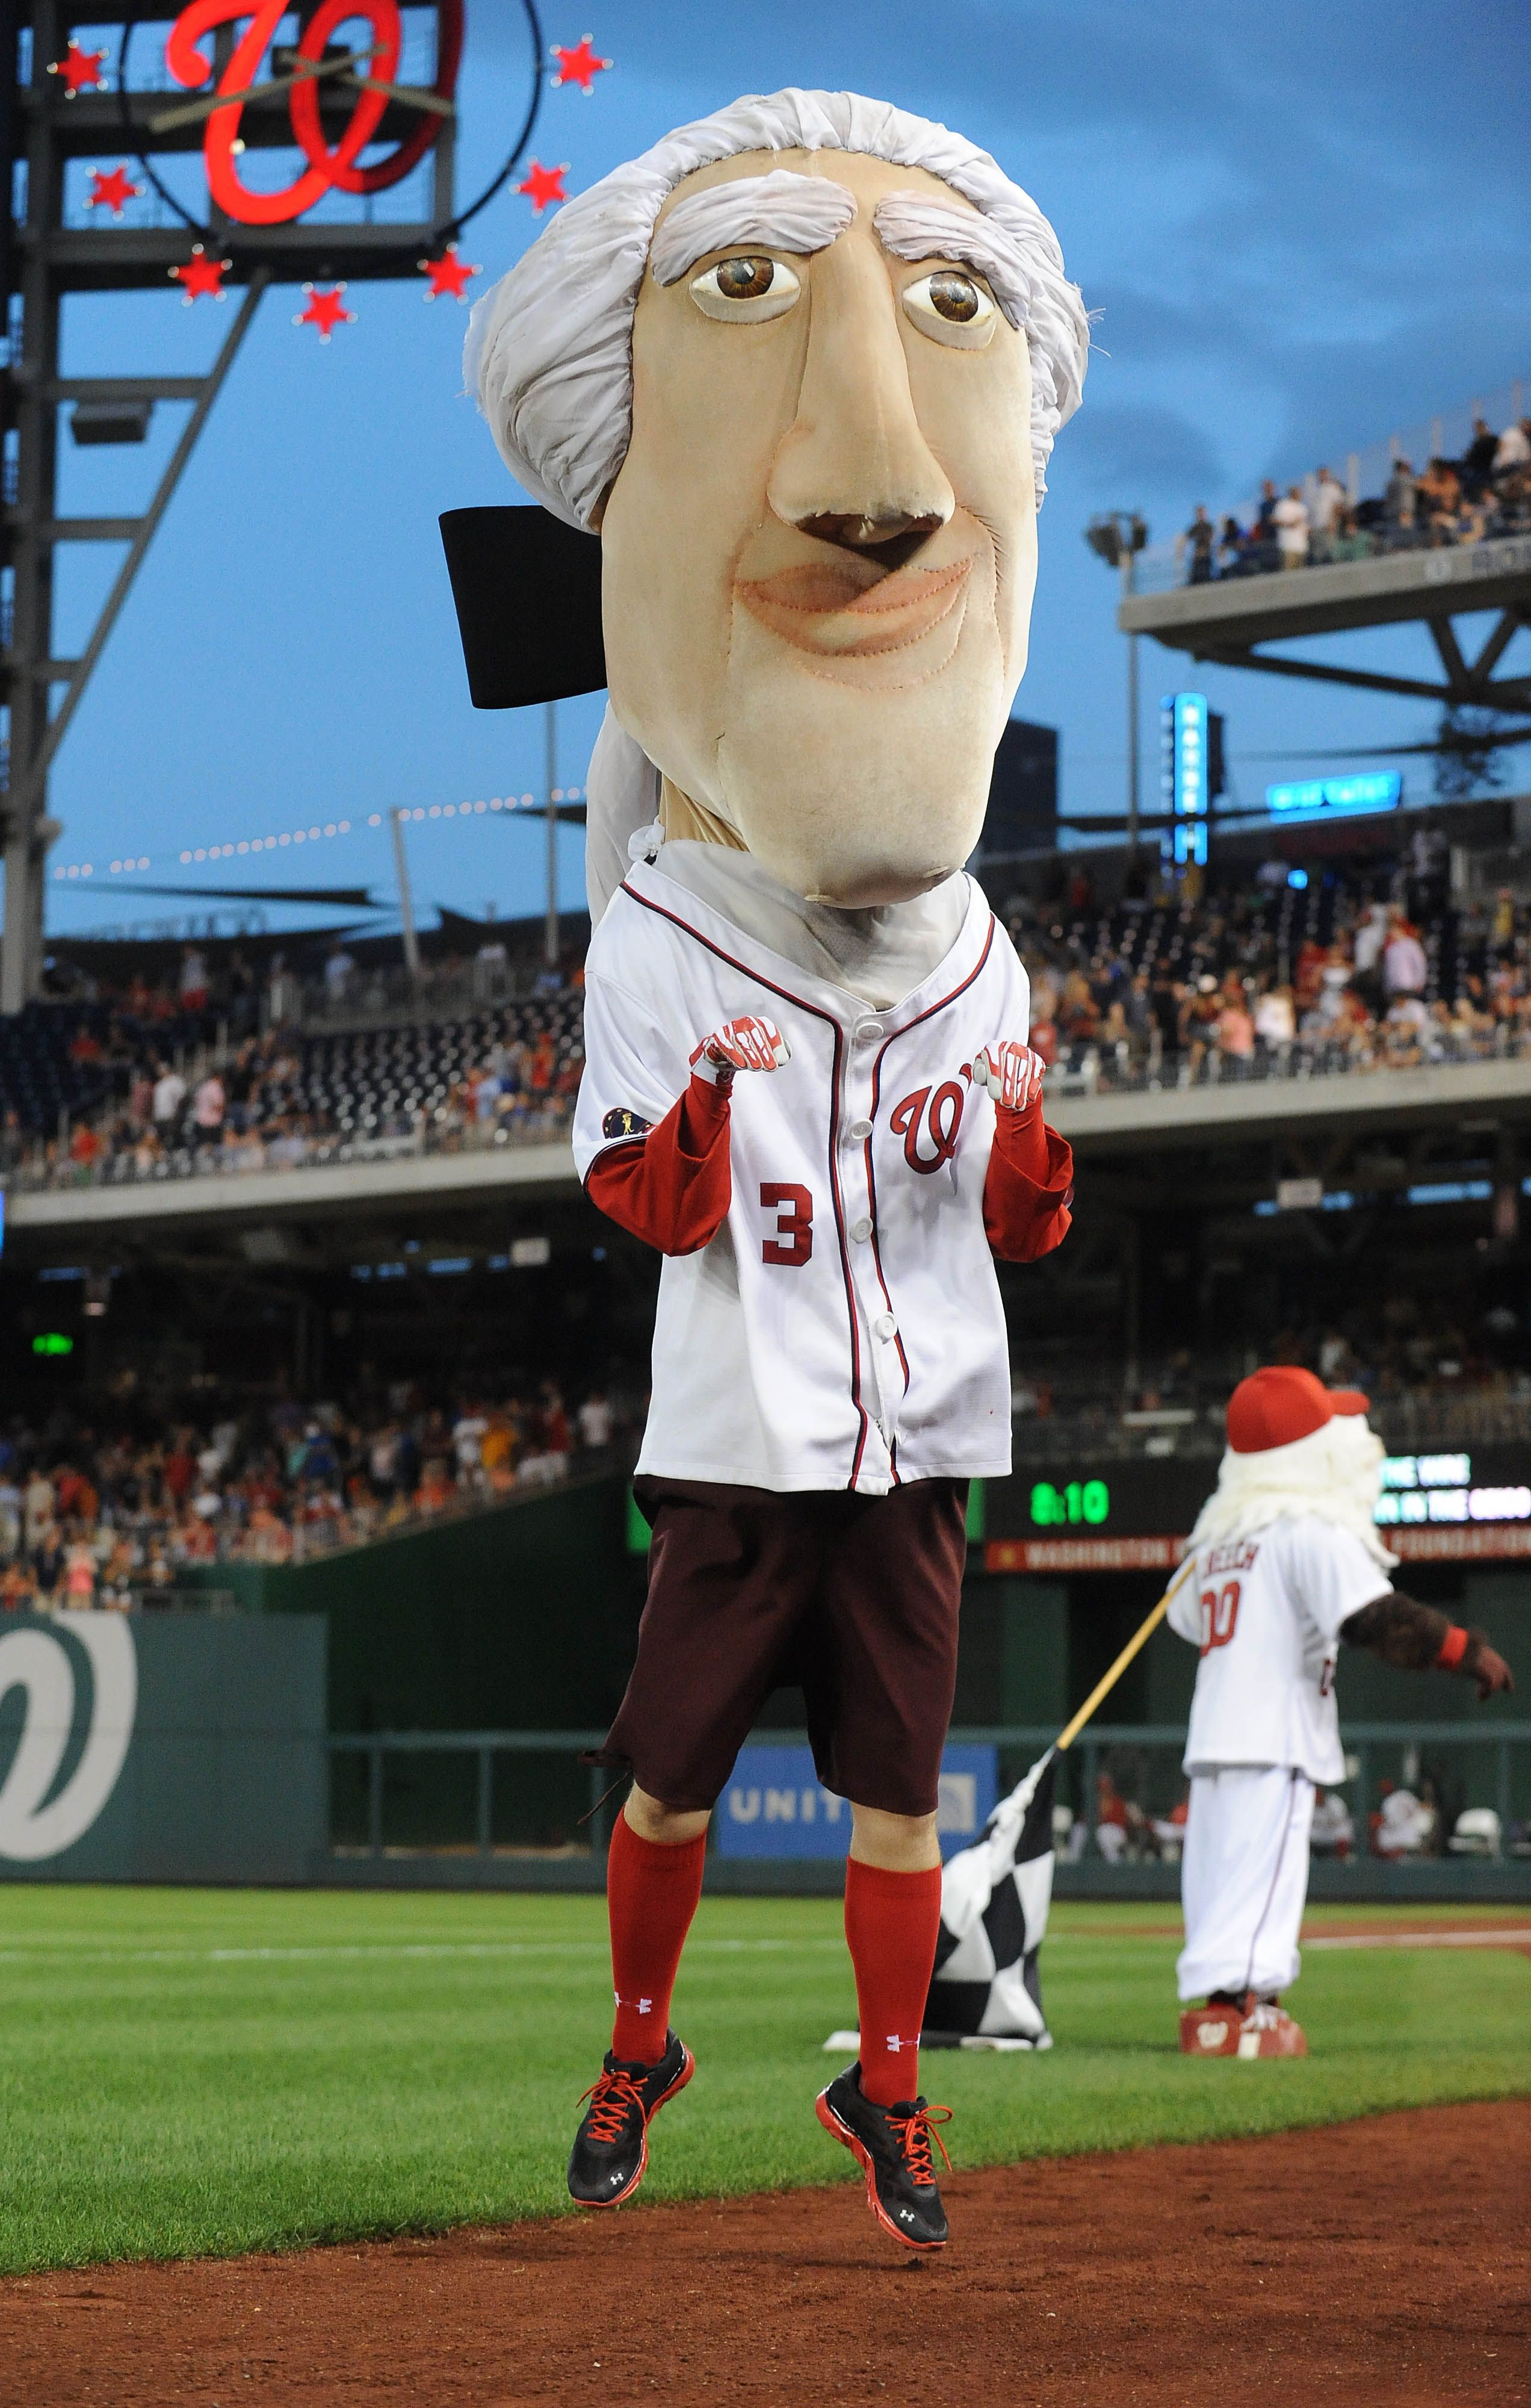 Thomas Jefferson Mascot Dances During The Game Between The Washington Nationals And The Philadelphia Philadelphia Phillies Washington Nationals Nationals Park